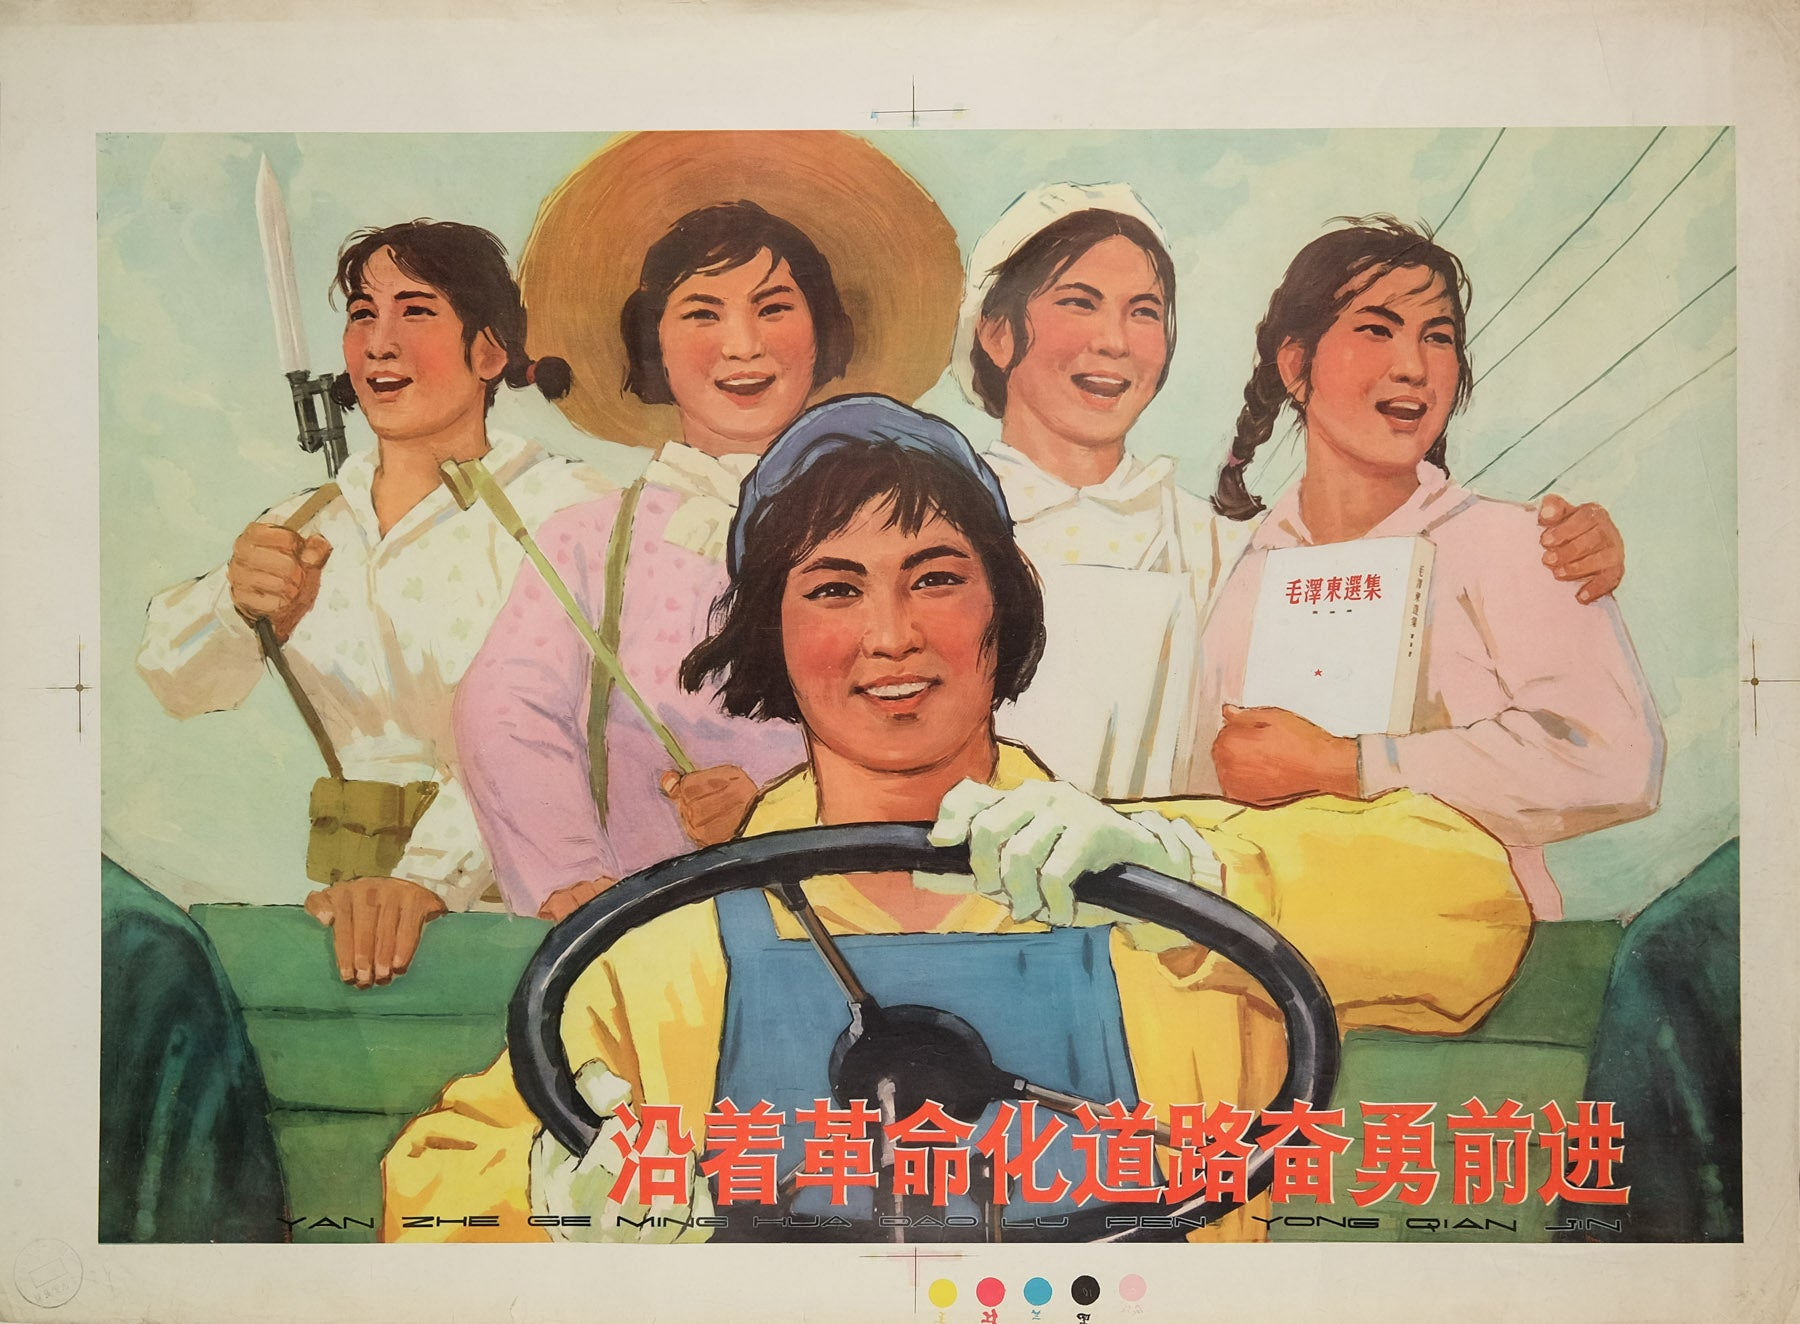 image of the original vintage 1965 Chinese communist propaganda poster titled Follow the revolutionary road, bravely march forward